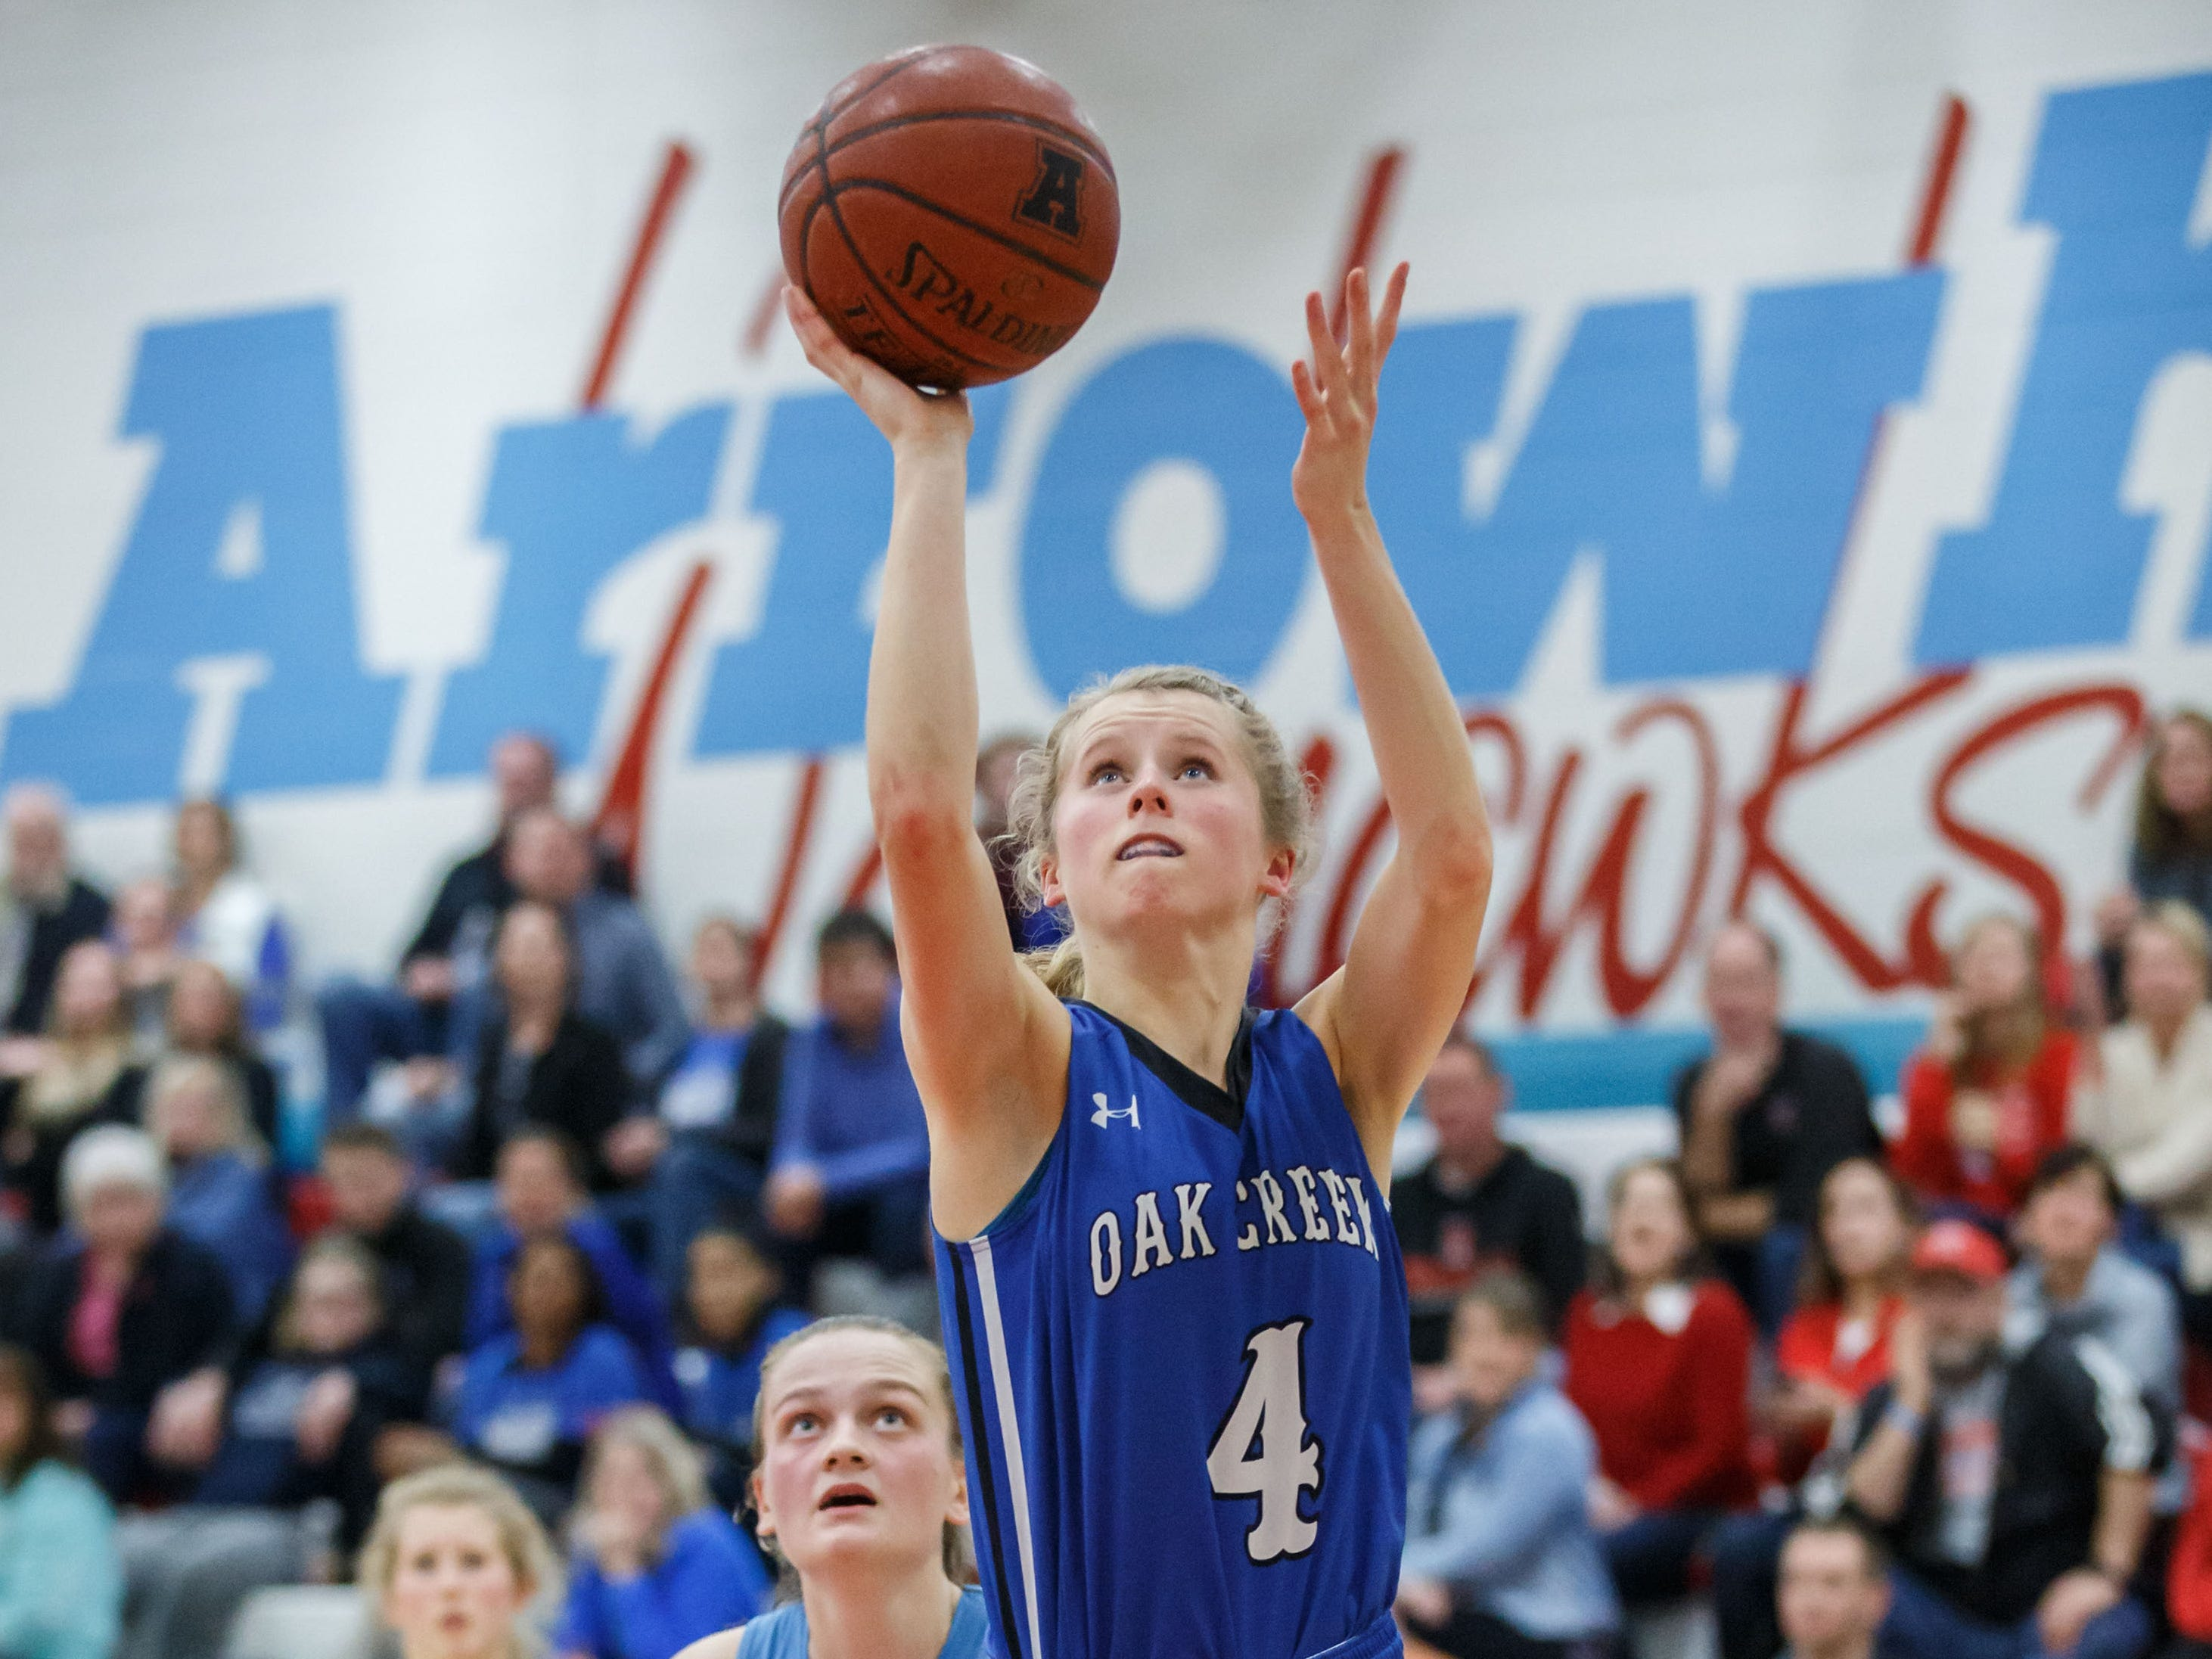 Oak Creek senior Maddie Gard (4) elevates for a shot during the game at Arrowhead on Friday, Nov. 16, 2018.